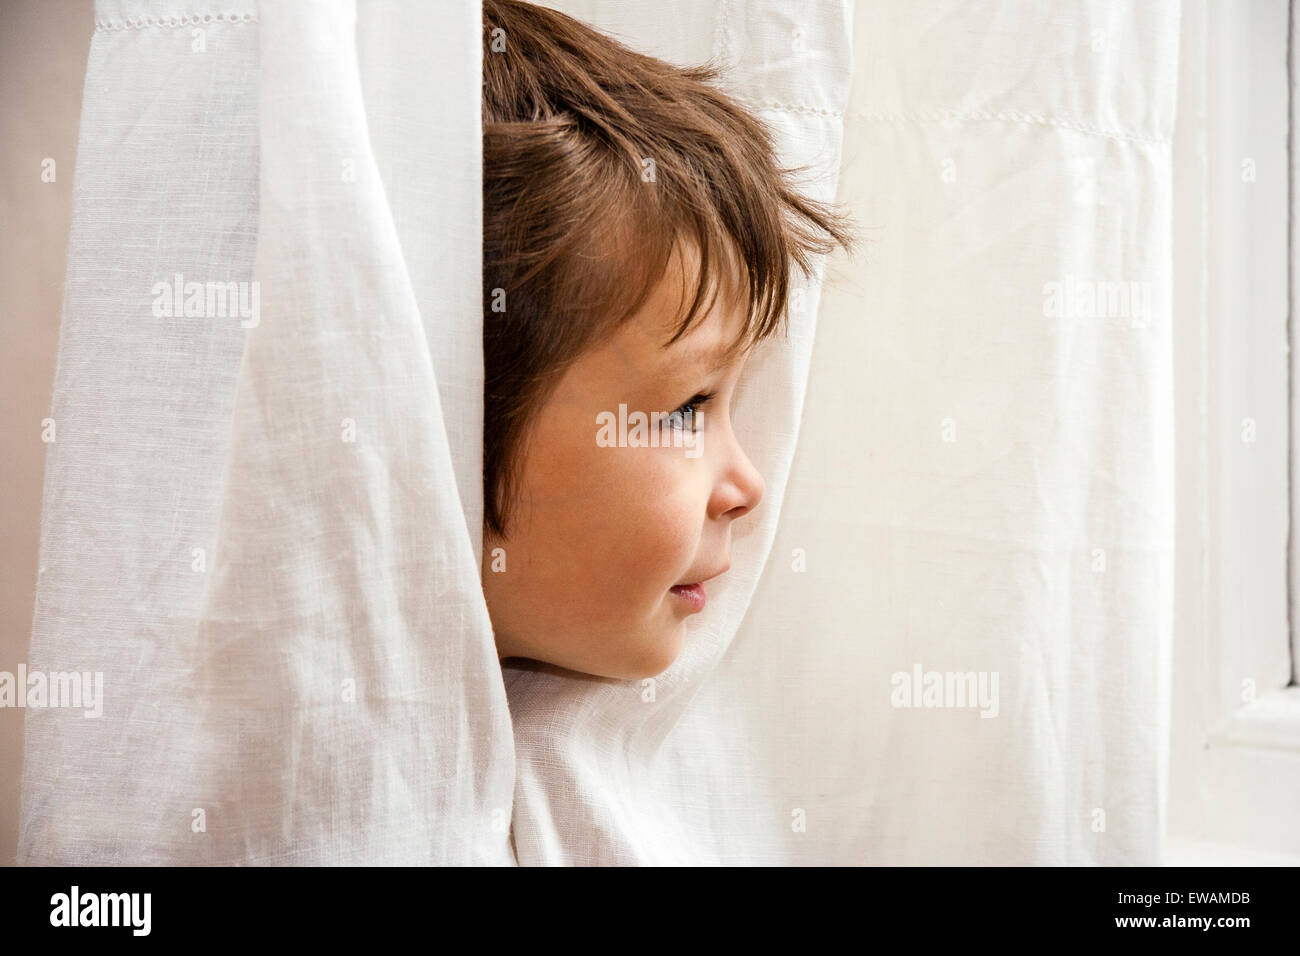 3 to 5 year old Caucasian boy. Indoors. Face poking out through net curtains, ruffled hair. Side-view - Stock Image